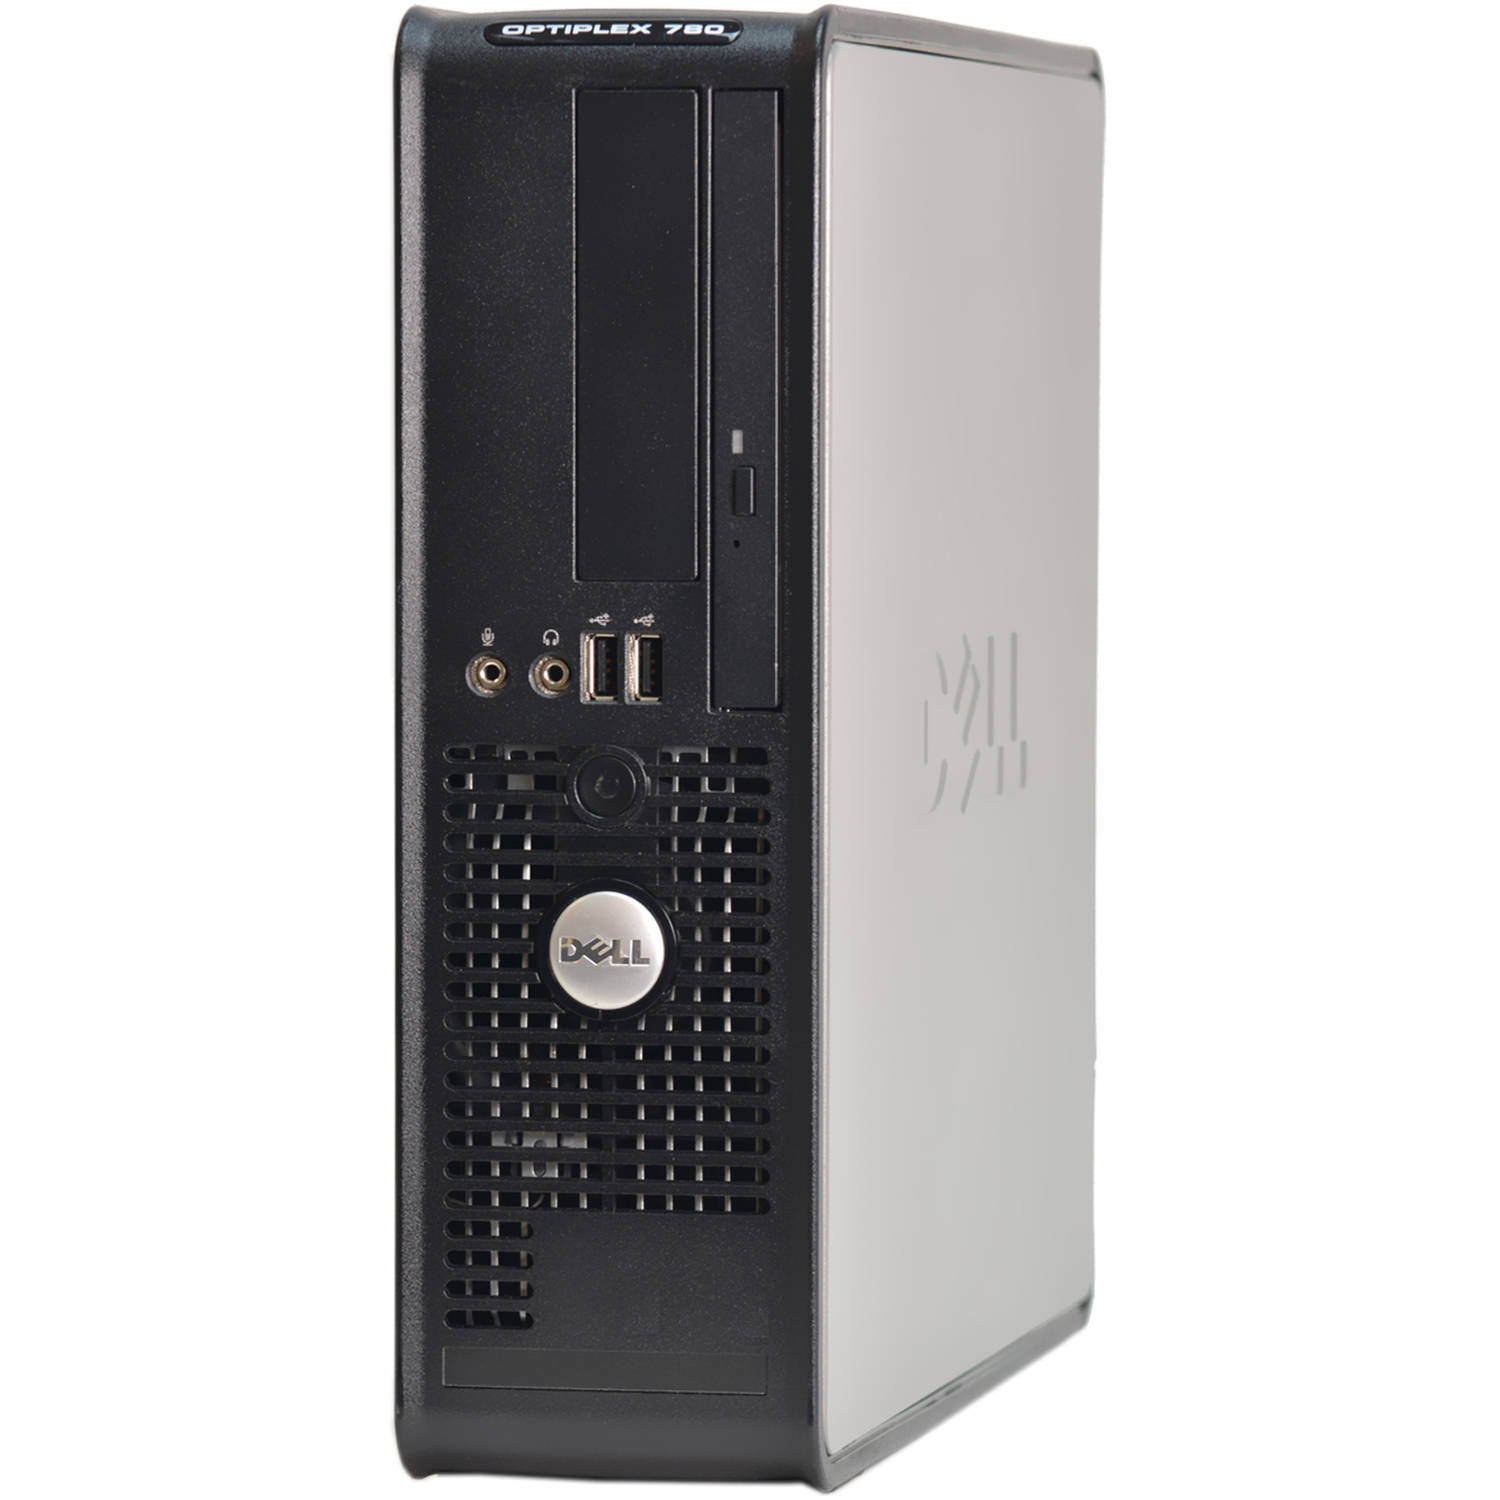 Refurbished Dell 780 Small Form Factor Desktop PC with Intel Core 2 Duo Processor, 6GB Memory, 1TB Hard Drive and Windows 10 Pro (Monitor Not Included)